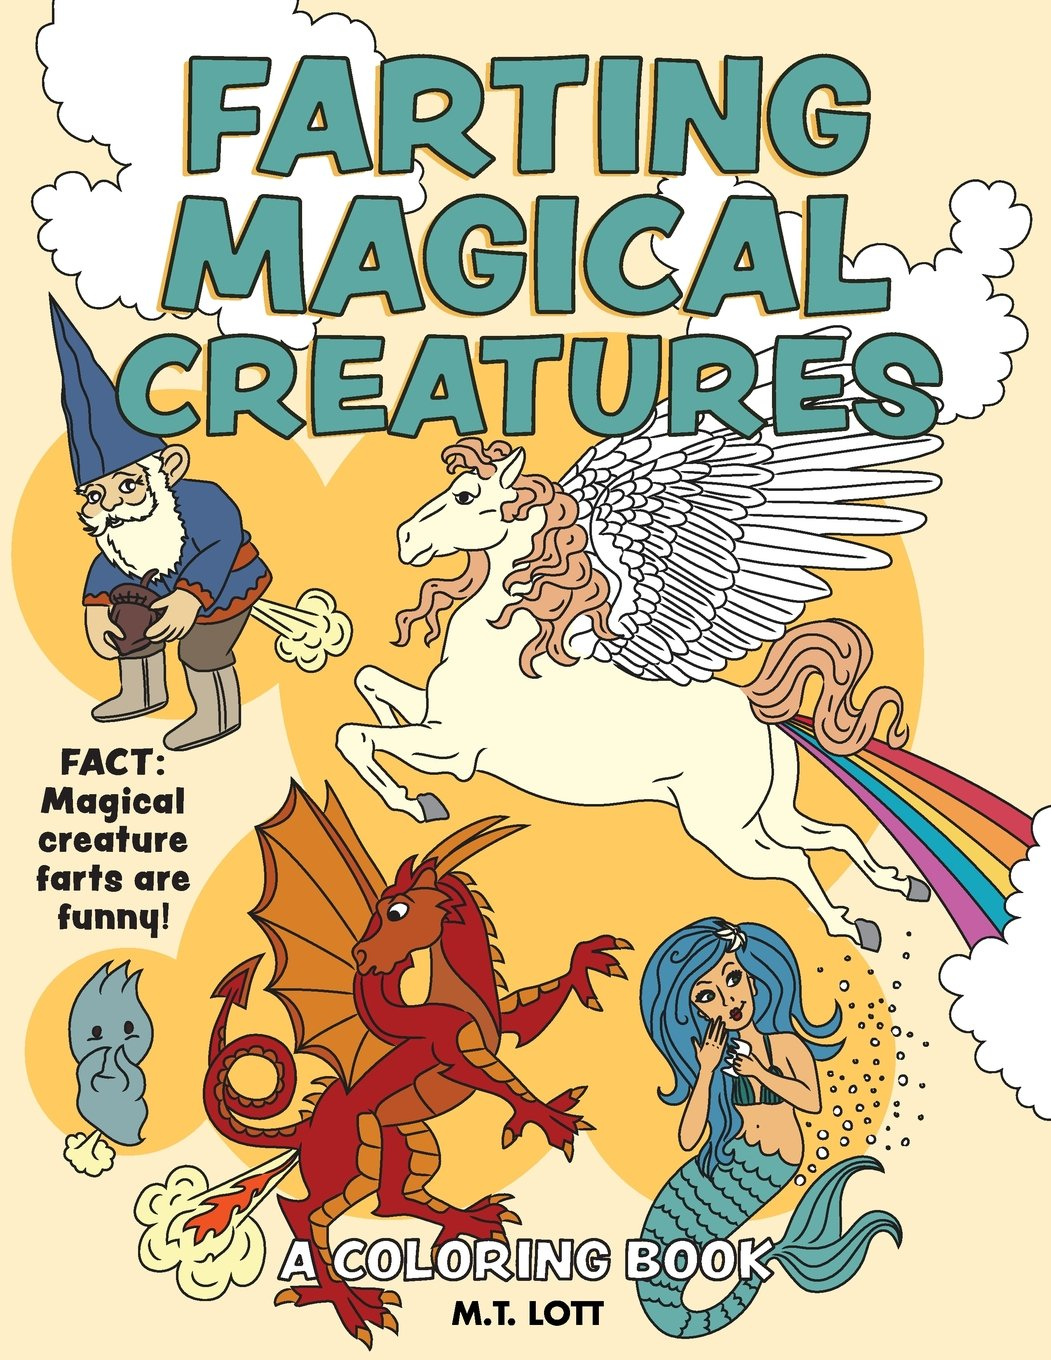 Farting Magical Creatures Coloring Book product image